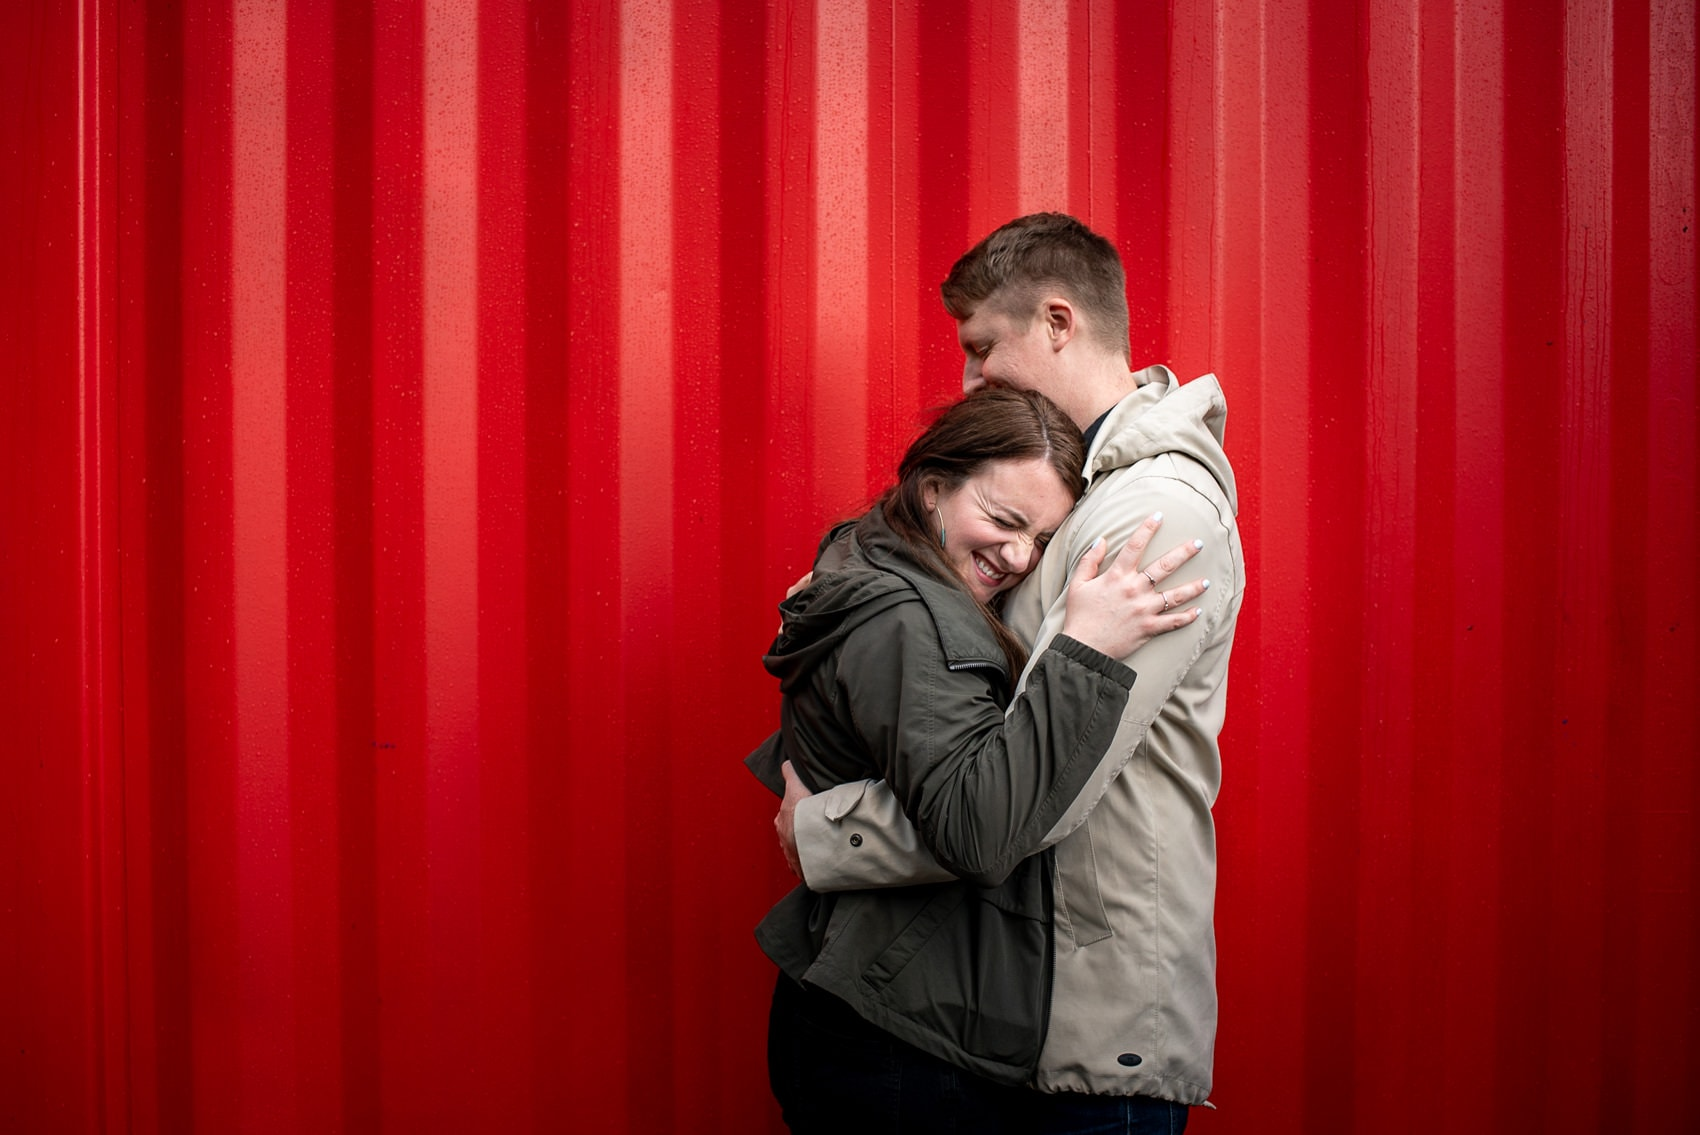 Photo of couple hugging in front of red container taken by London engagement photographer Matt Badenoch